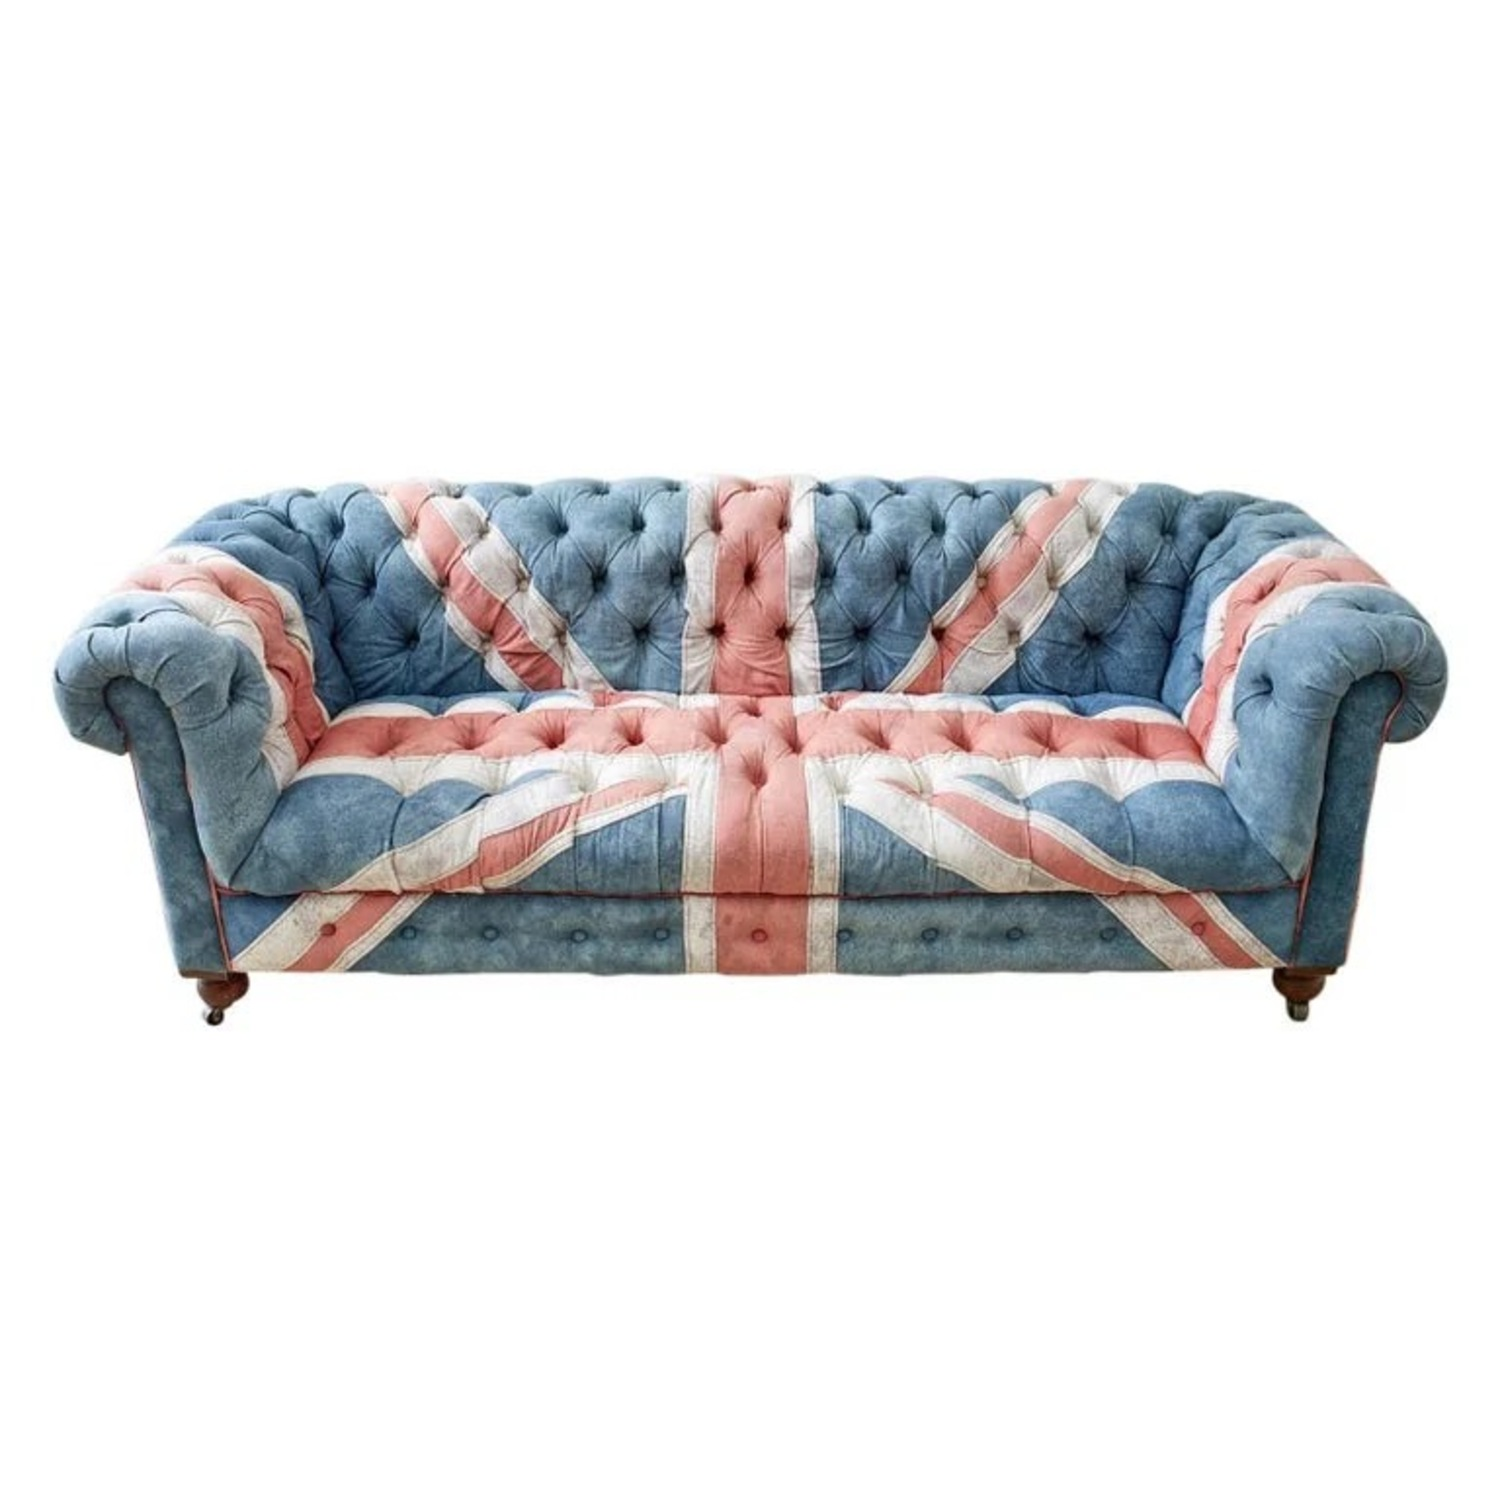 Timothy Oulton Design Union Jack Chesterfield Sofa - image-1